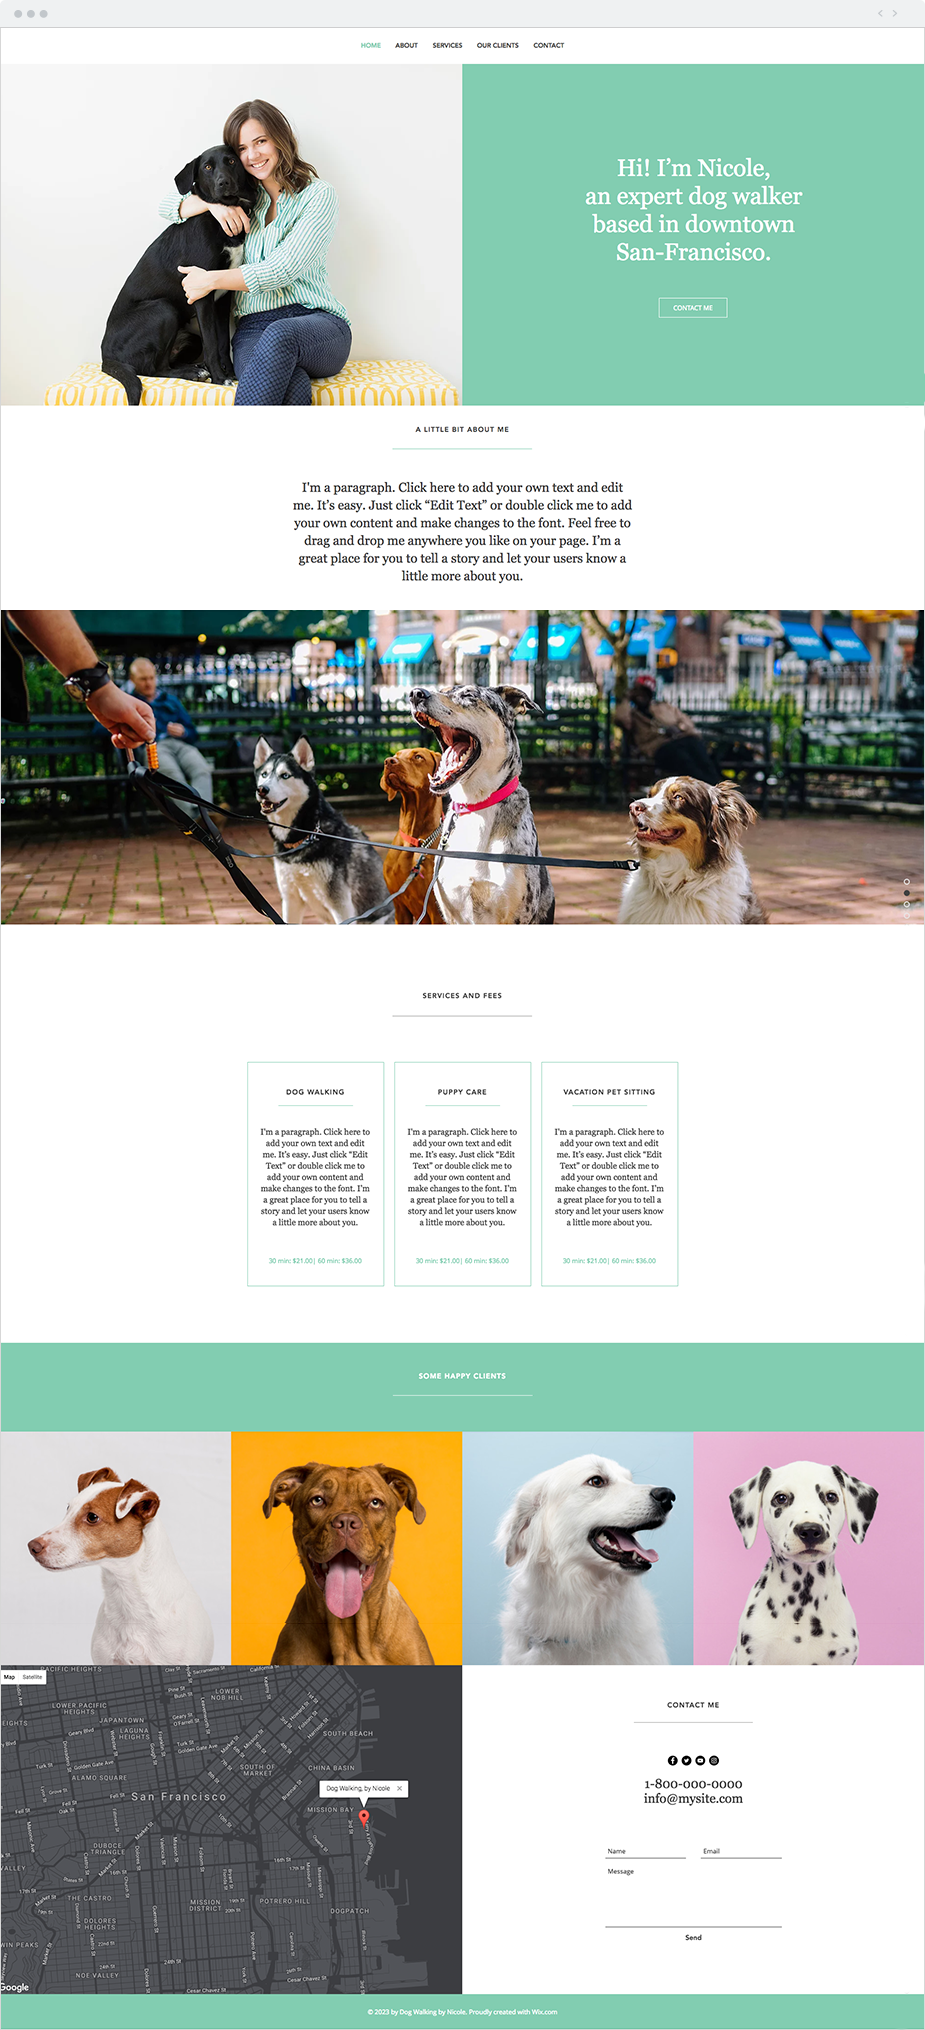 Dog Walking Website Template | Arts - Arts